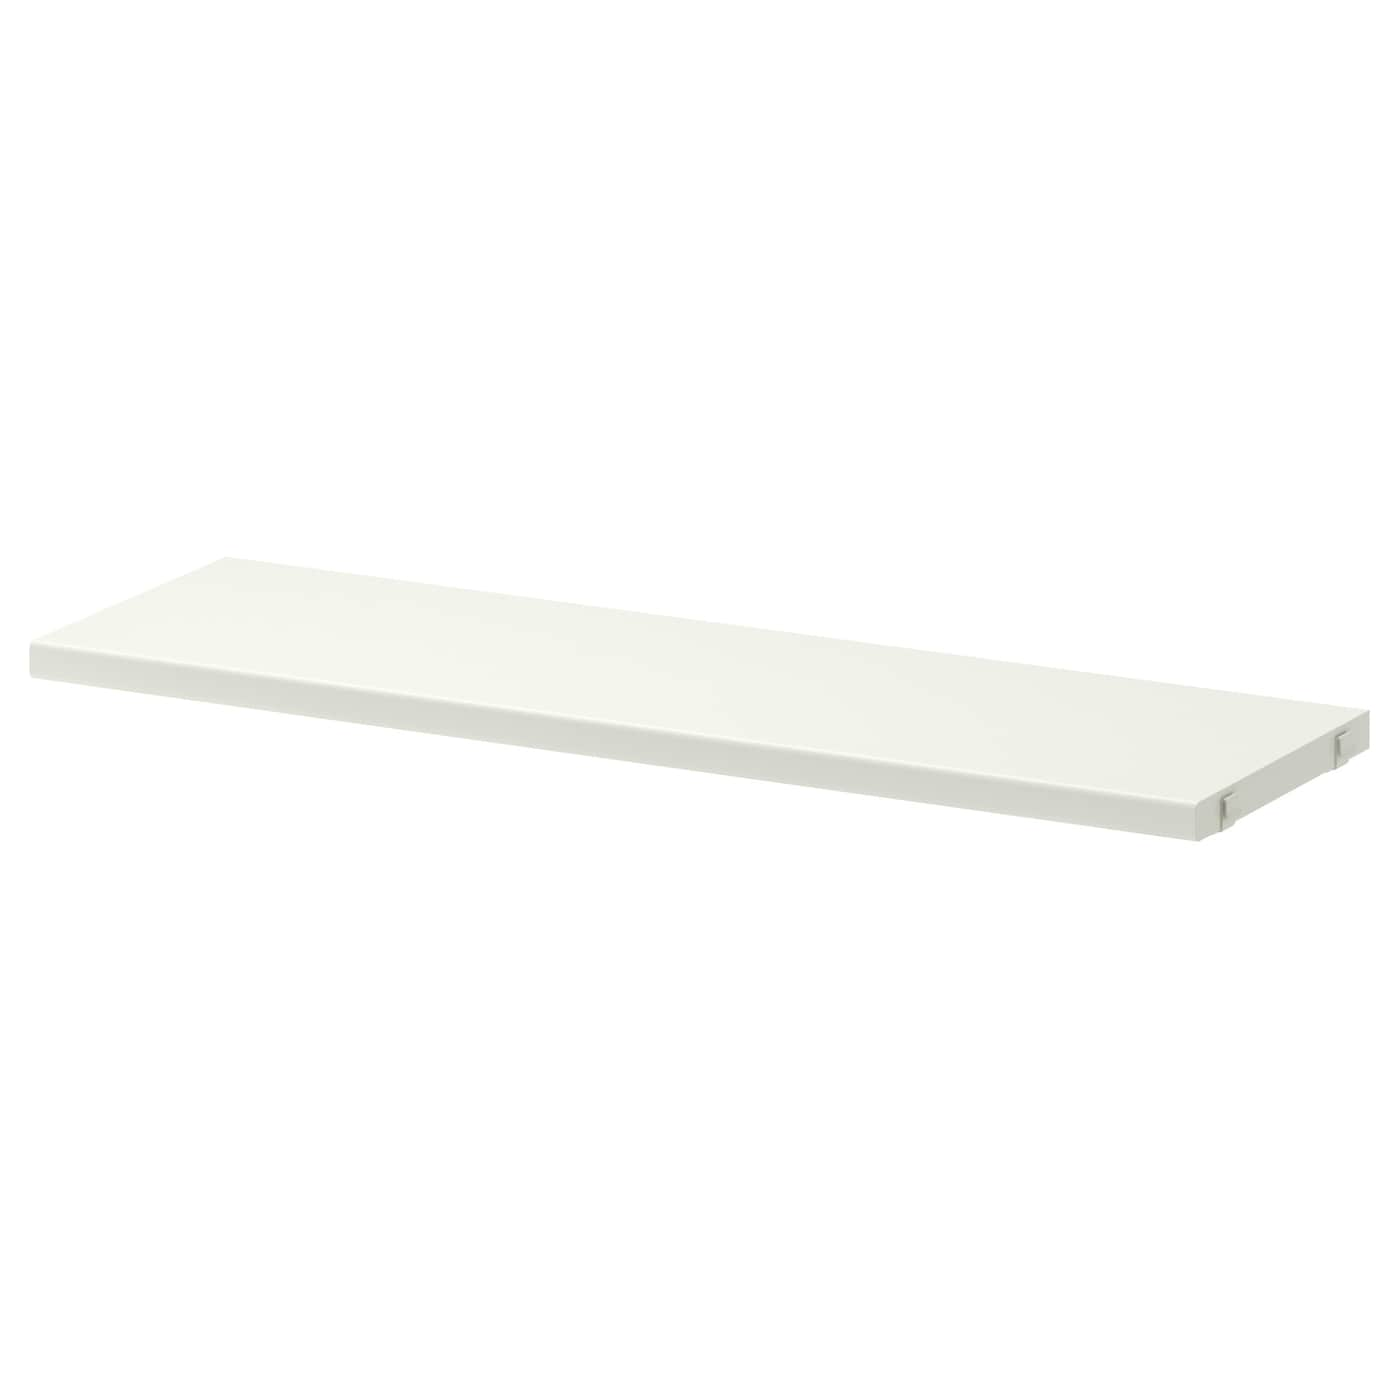 IKEA ALGOT shelf Just click in on ALGOT brackets – no tools needed.